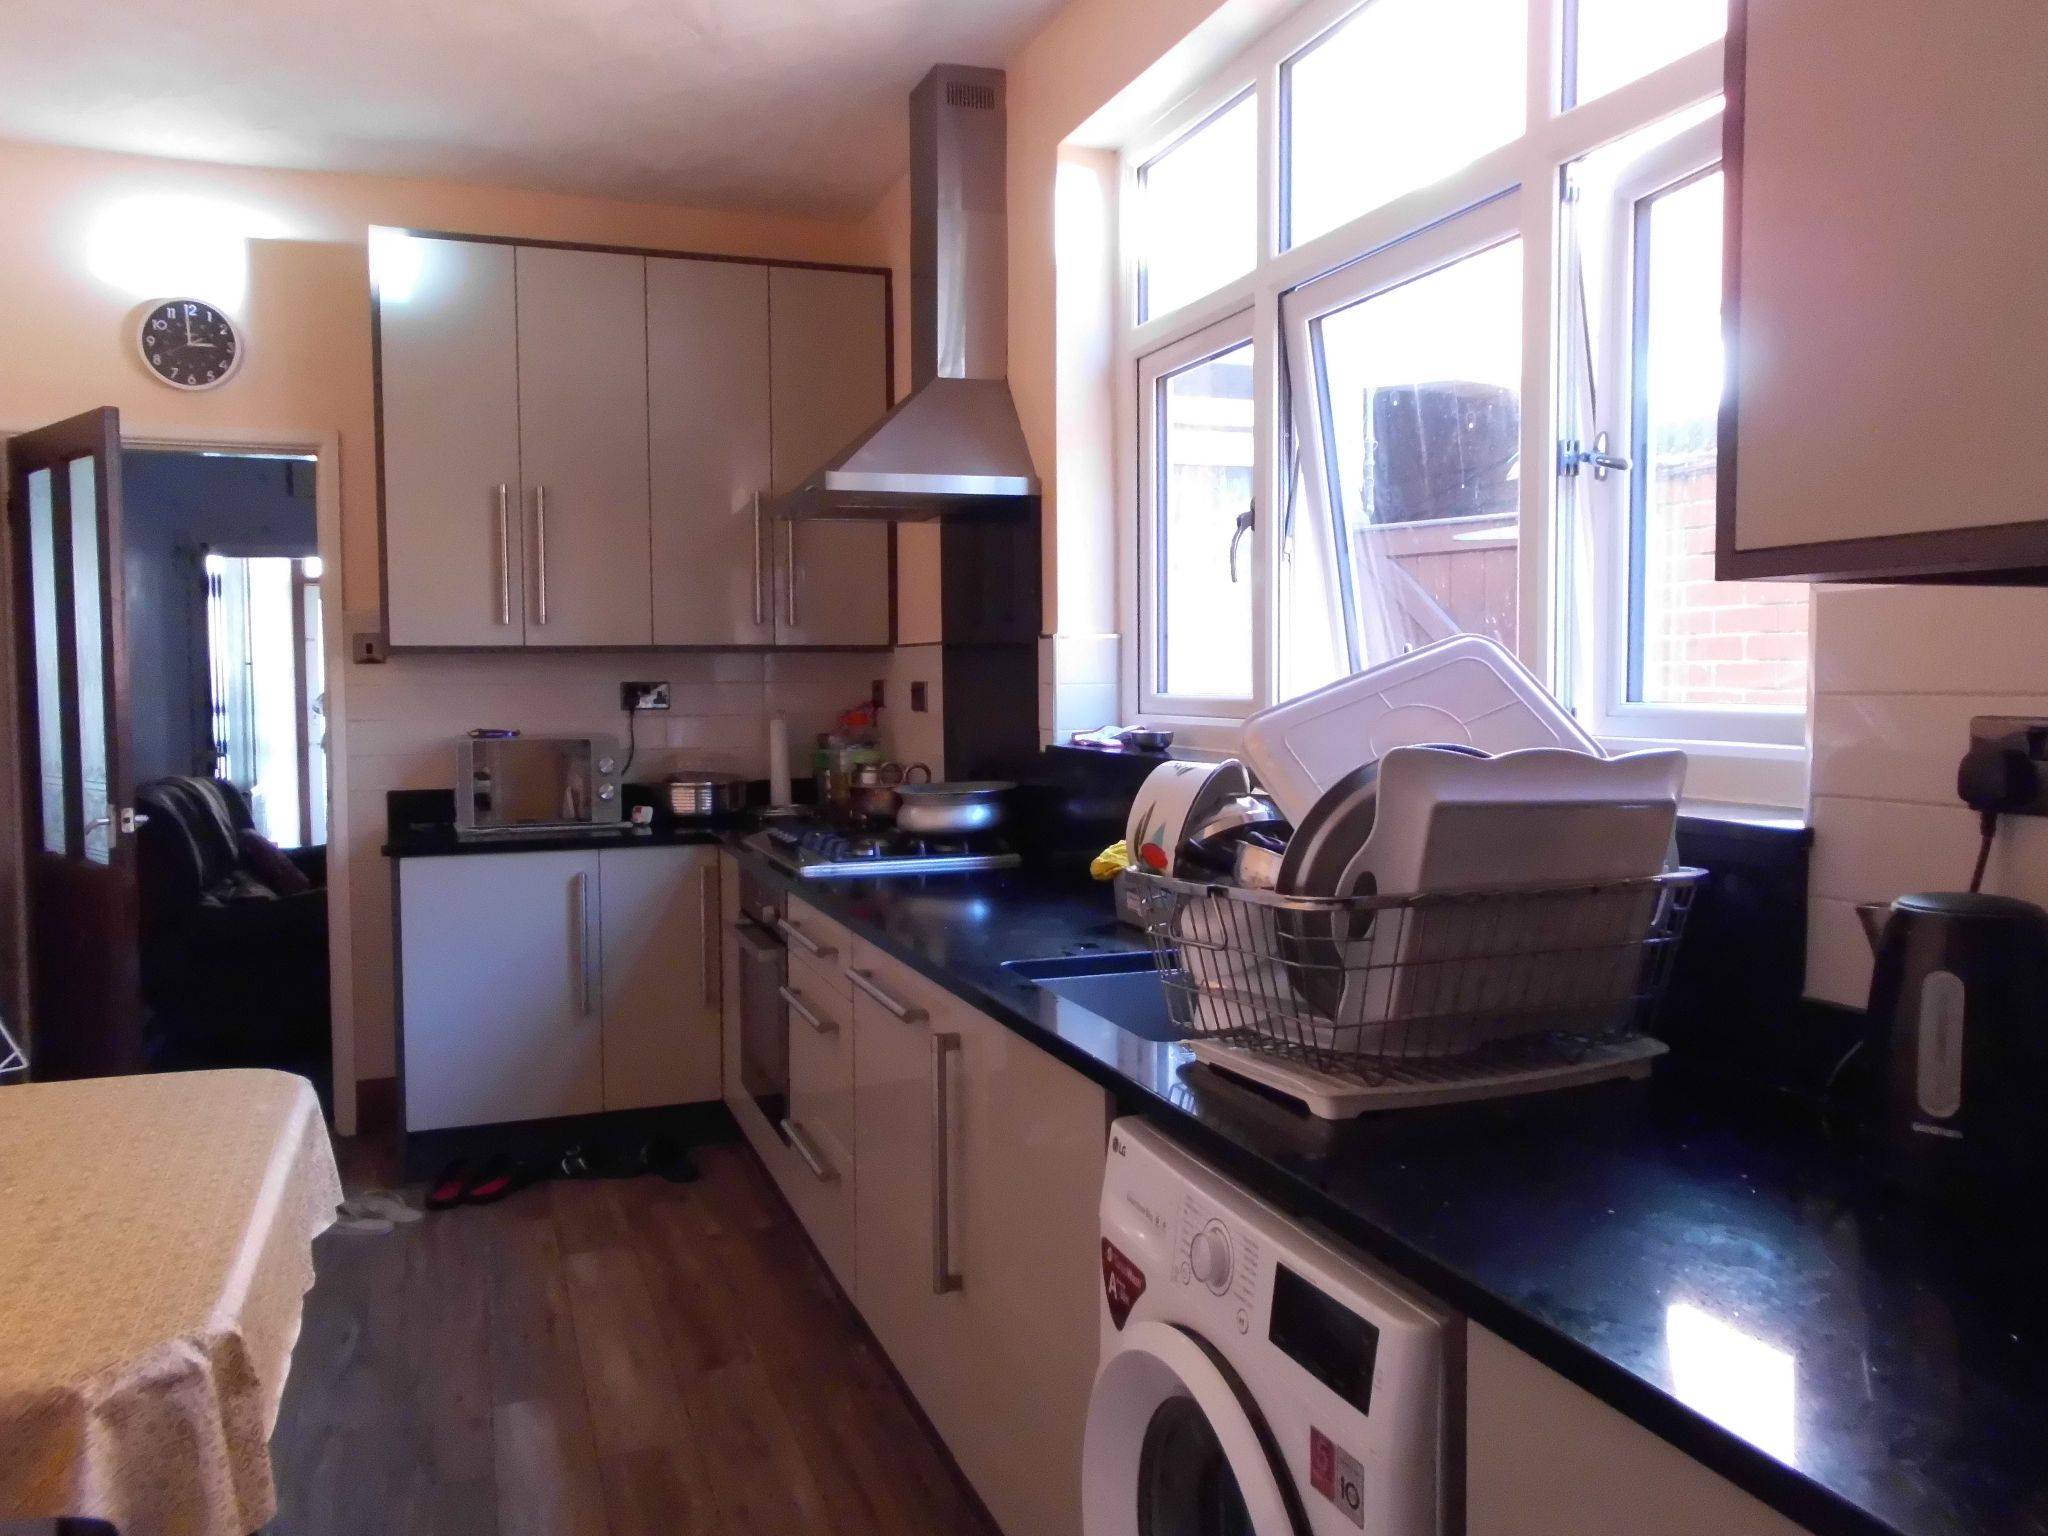 4 bedroom mid terraced house For Sale in Leicester - Photograph 6.